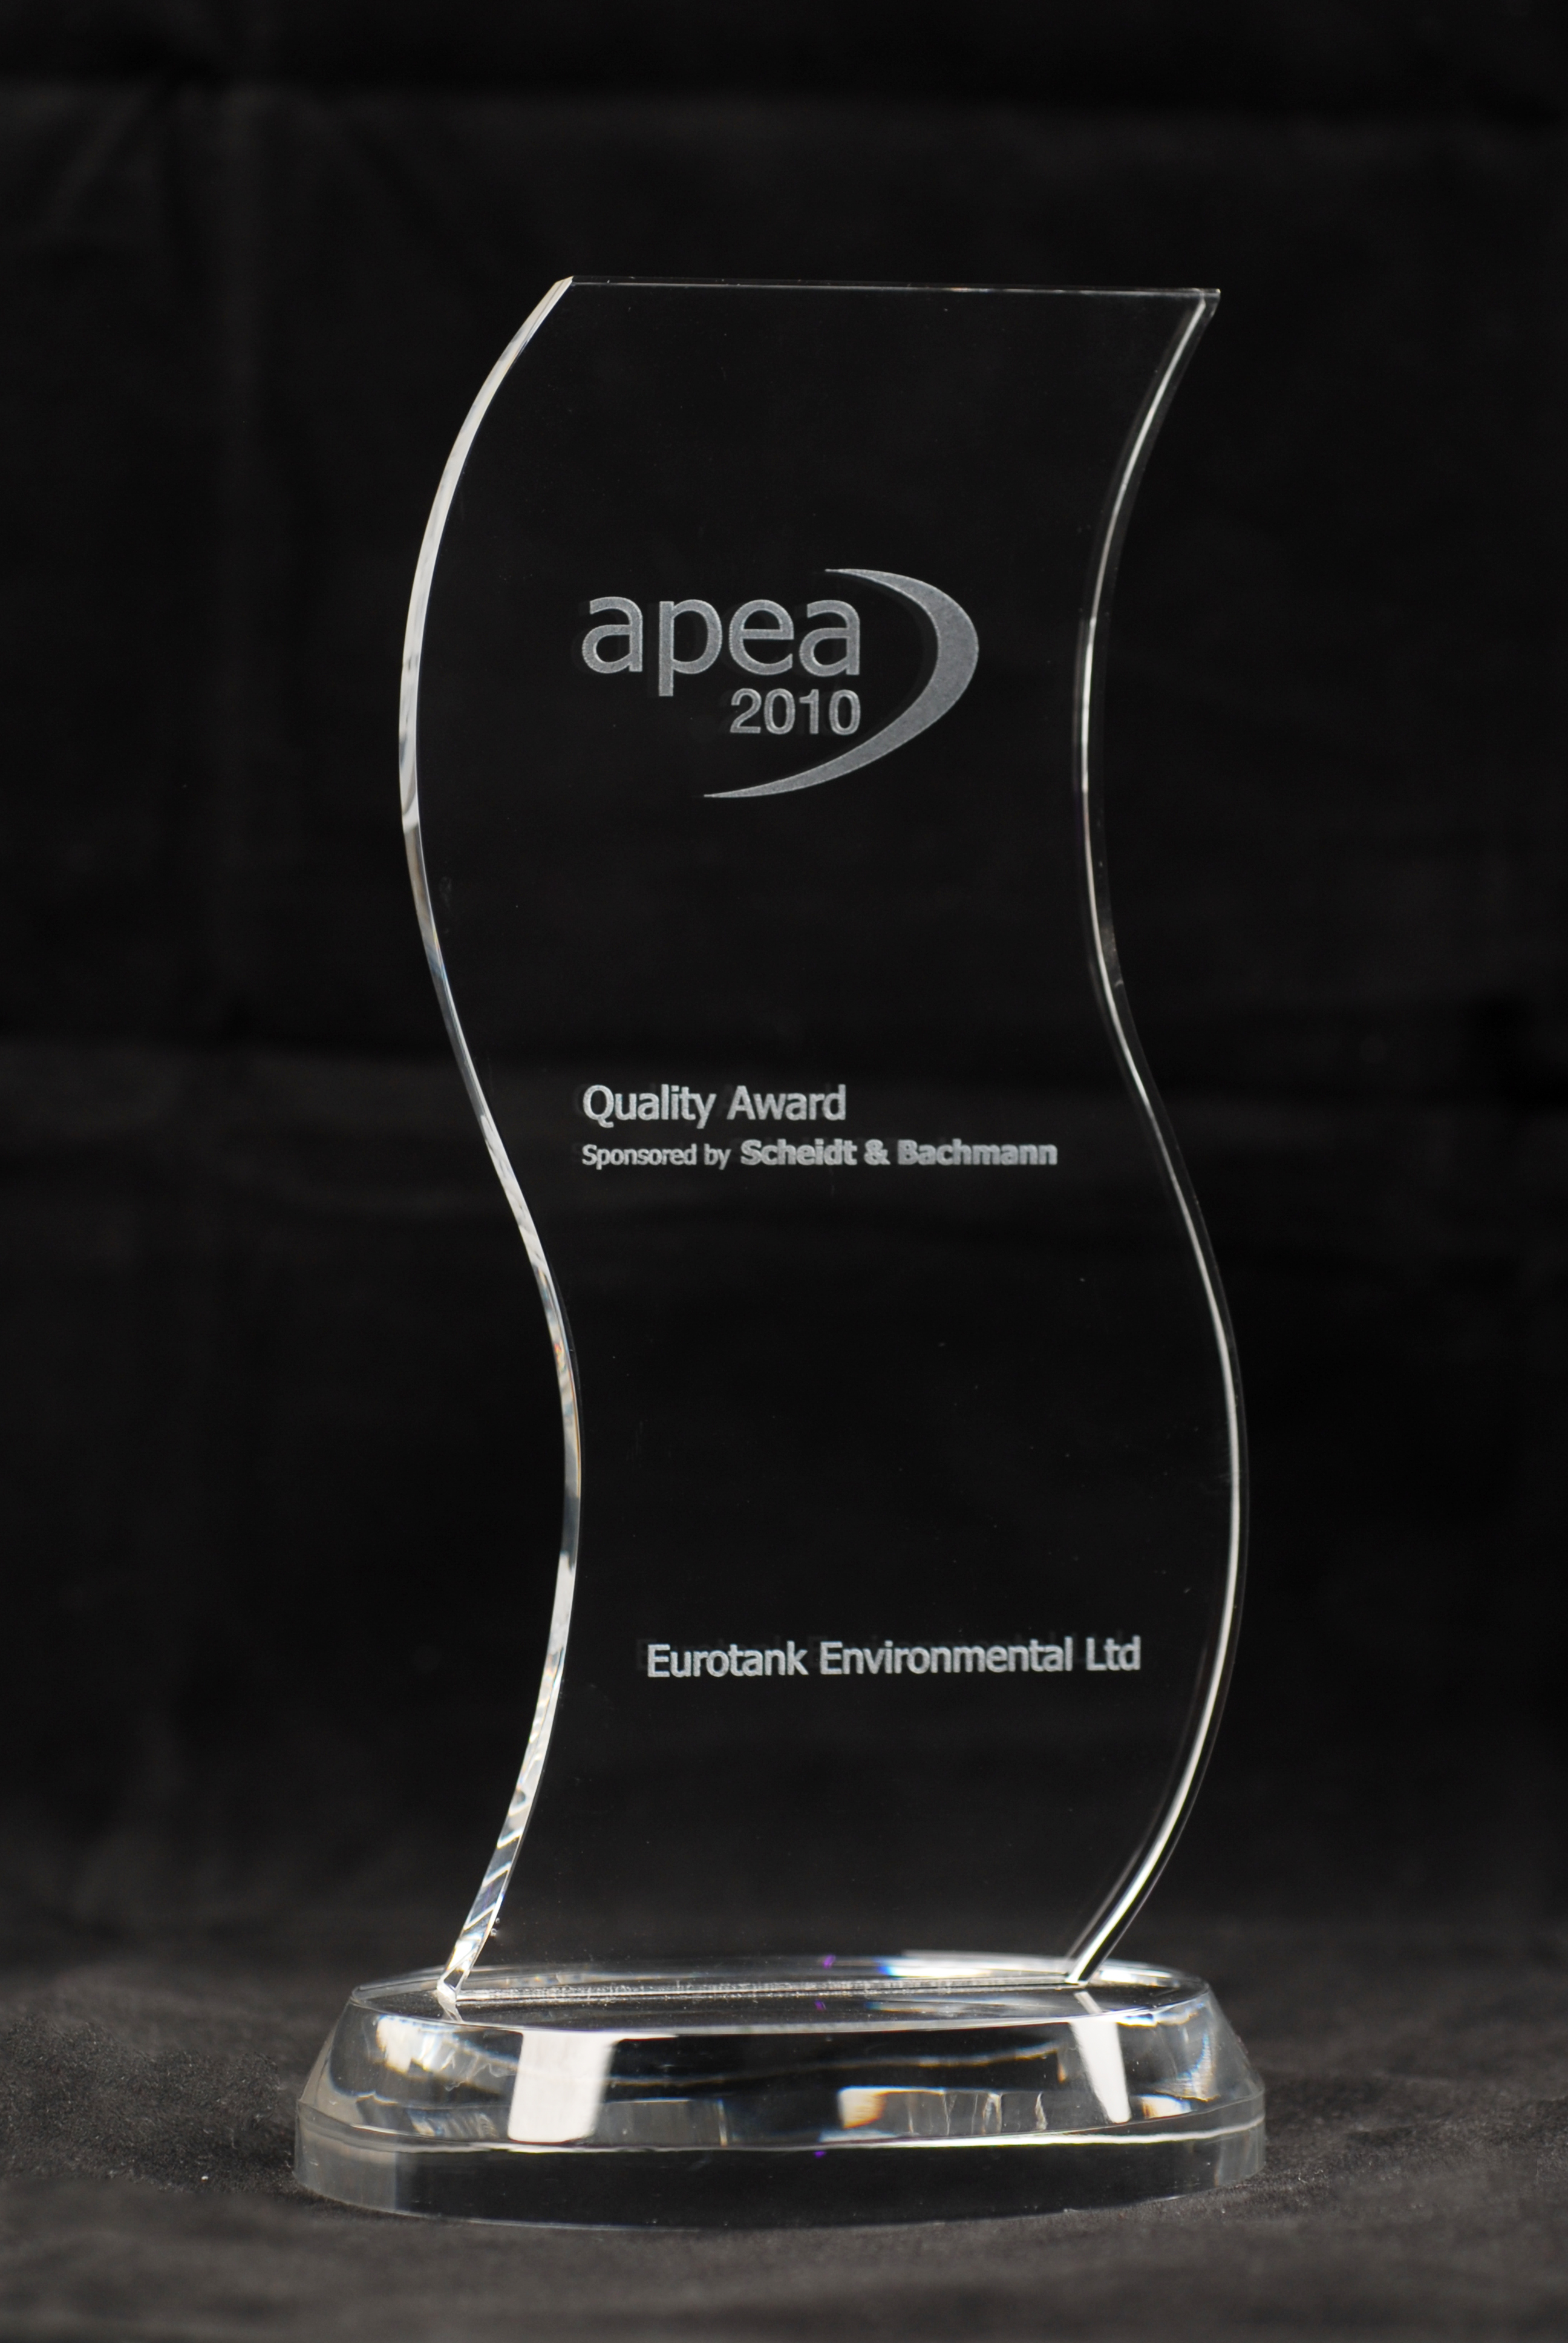 APEA Quality Award for safely degassing a fuel tank